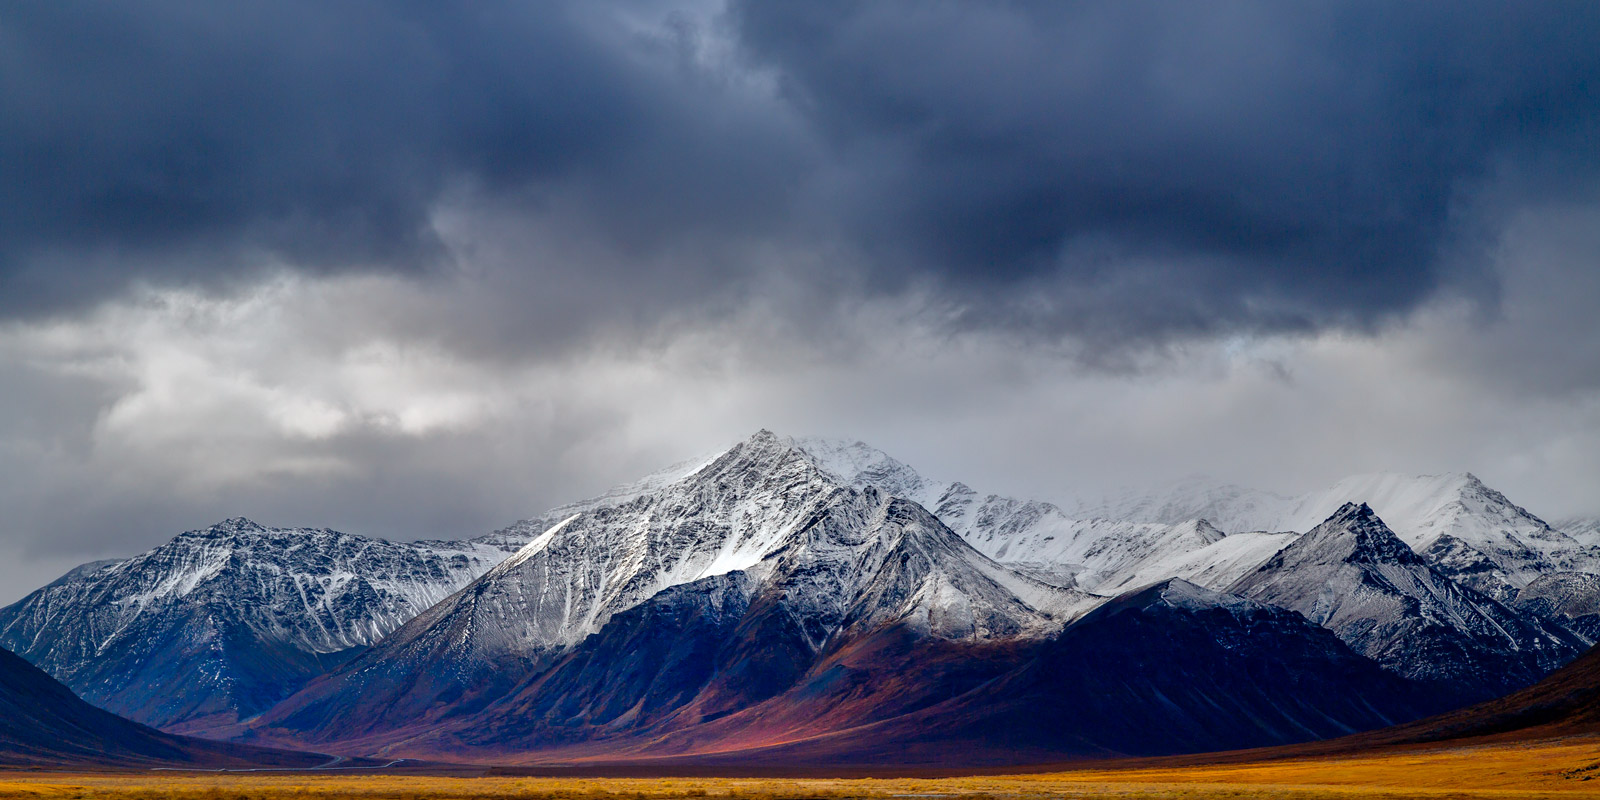 A Limited Edition, Fine Art photograph of mountains in the Brooks Range of Alaska with a dramatic scene of storm clouds over...